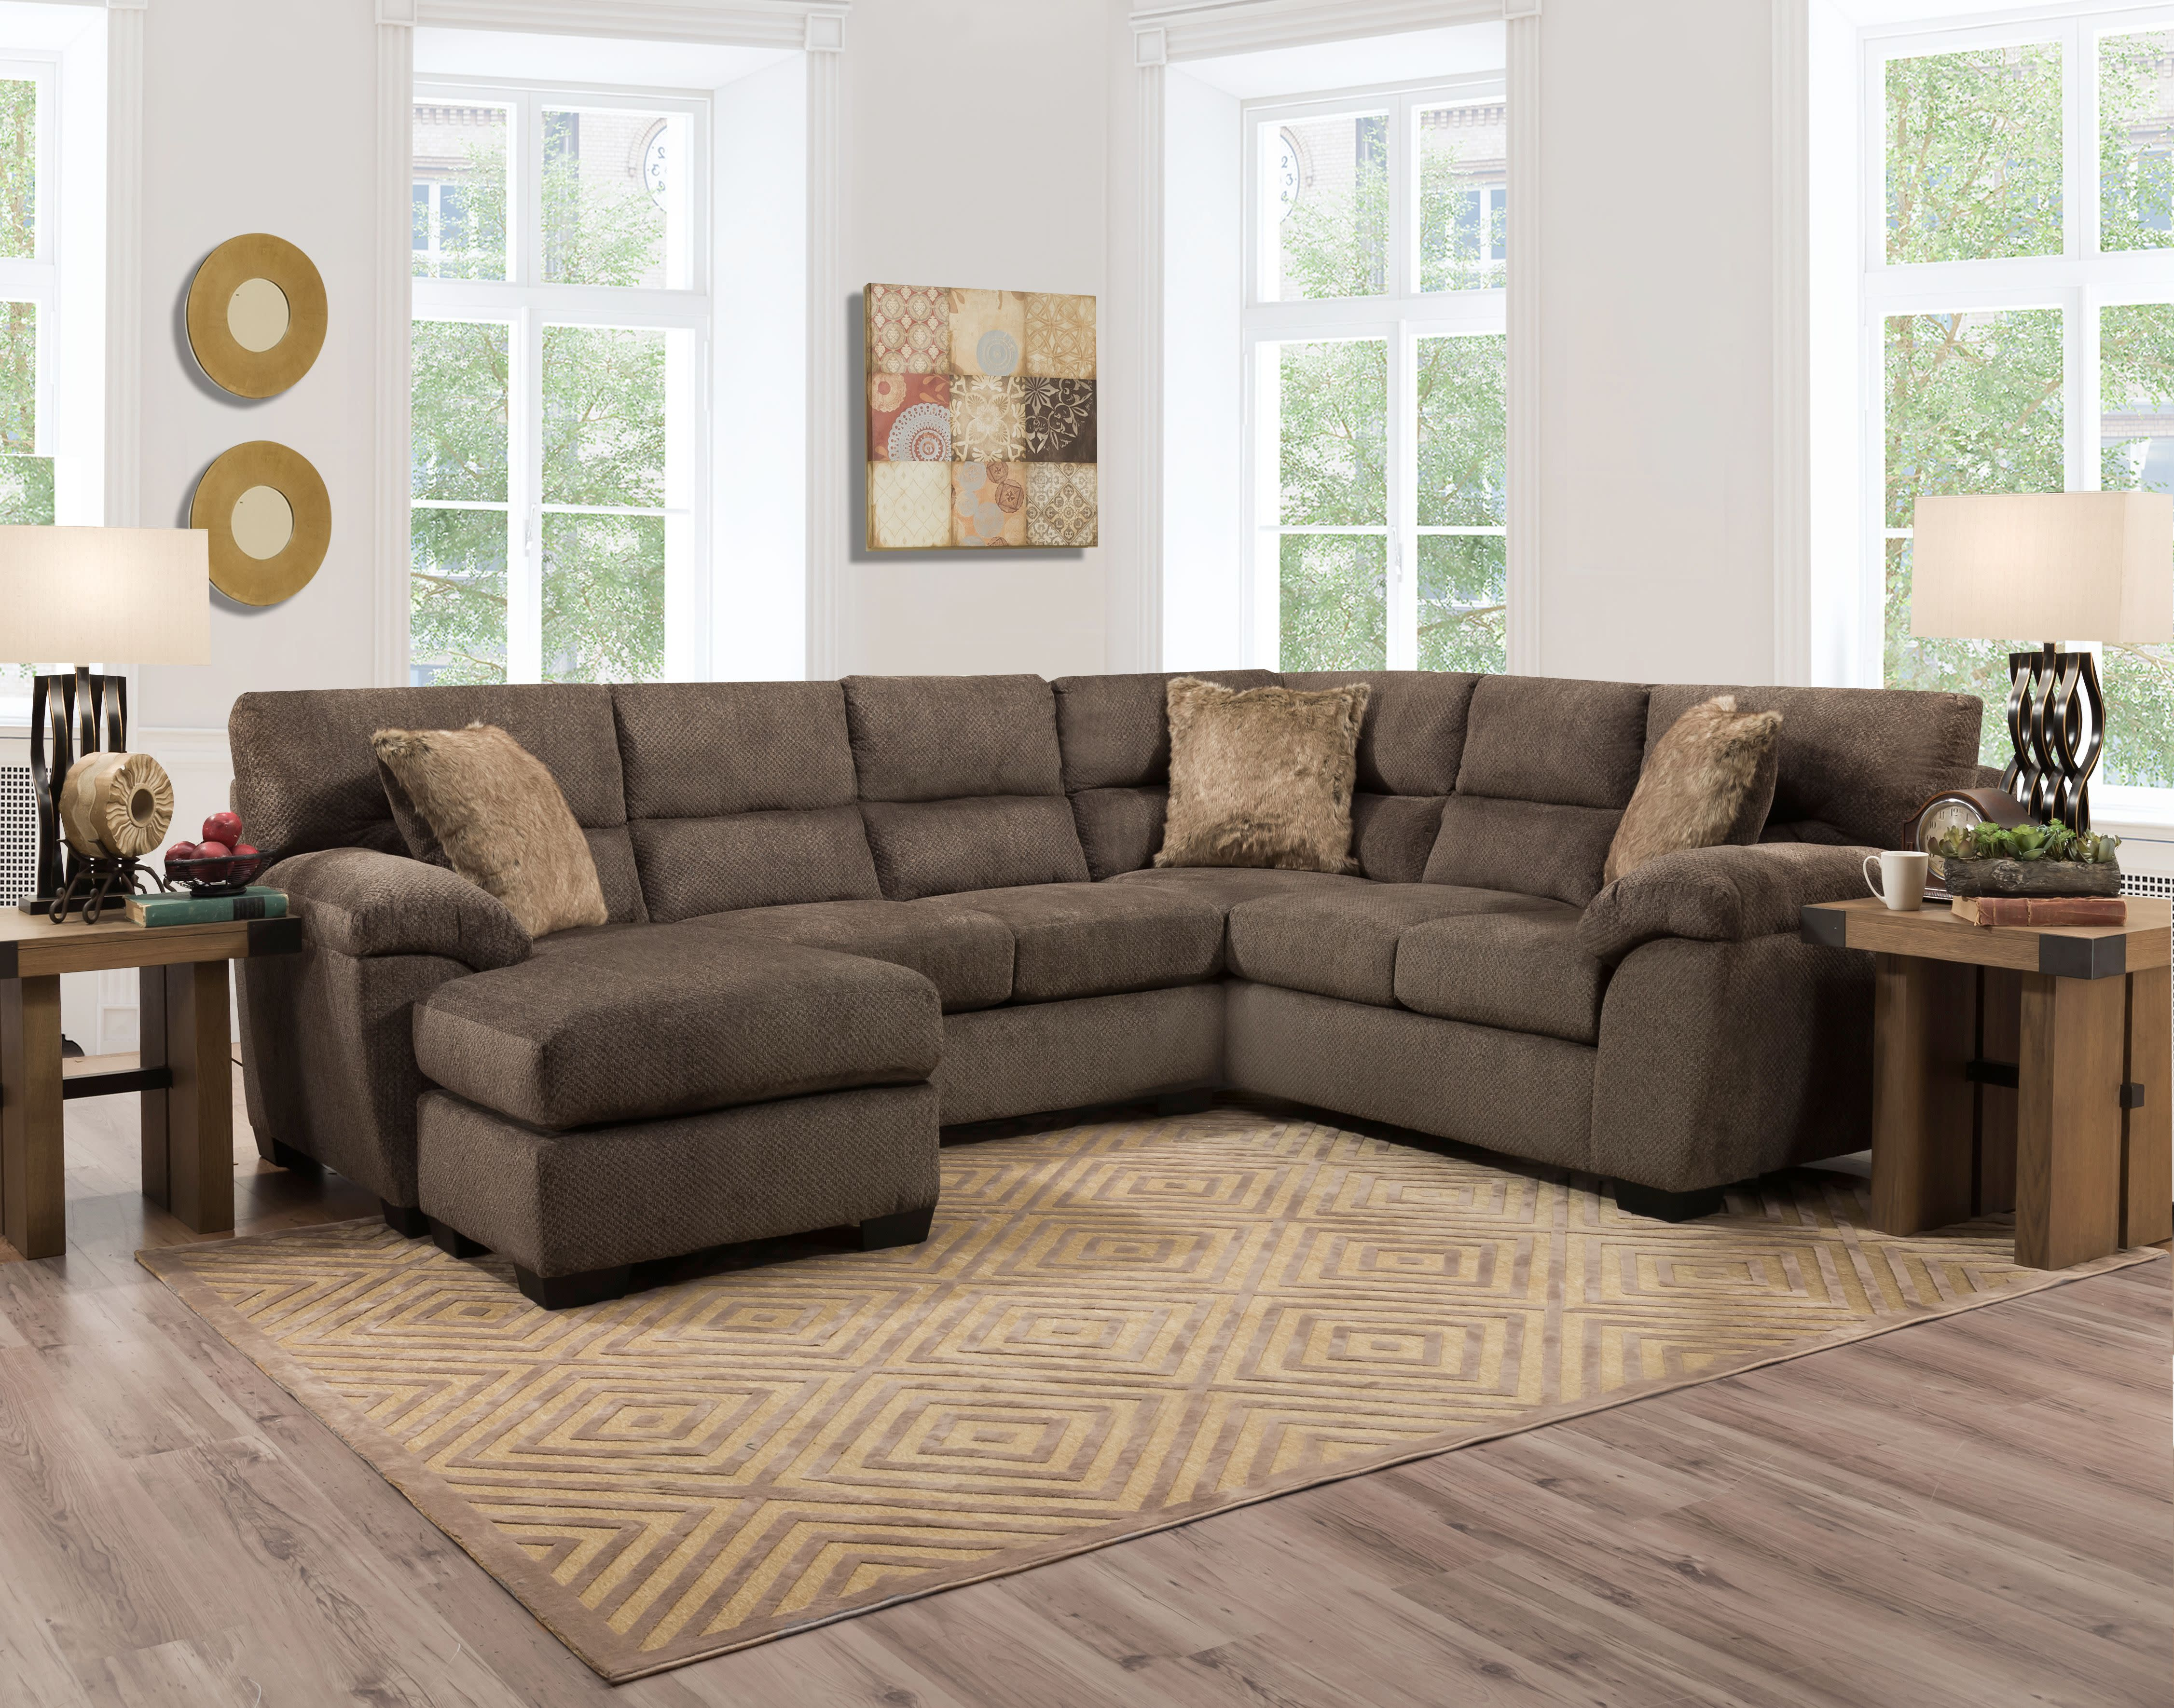 Living Room Furniture American Freight Sears Outlet